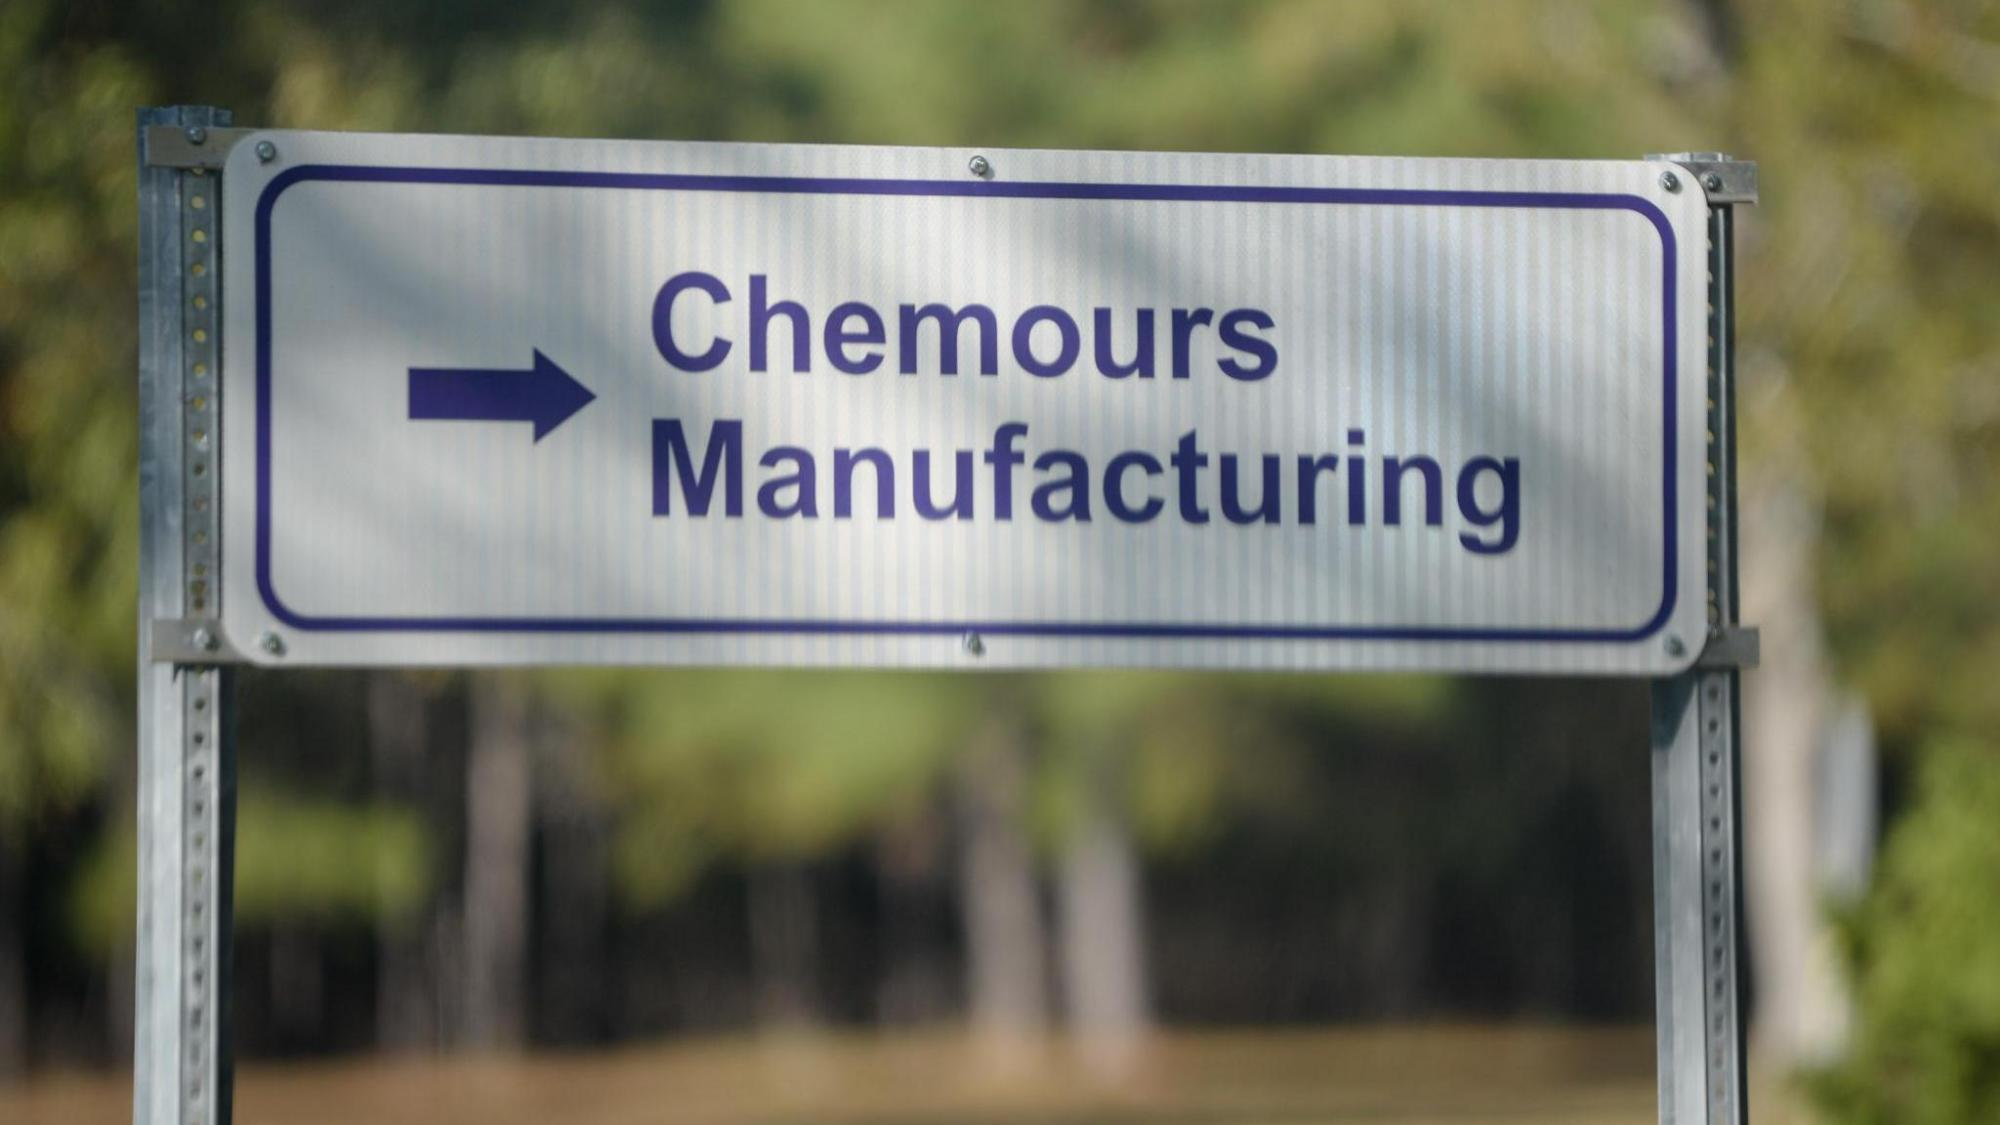 Health officials to begin testing Chemours neighbors for